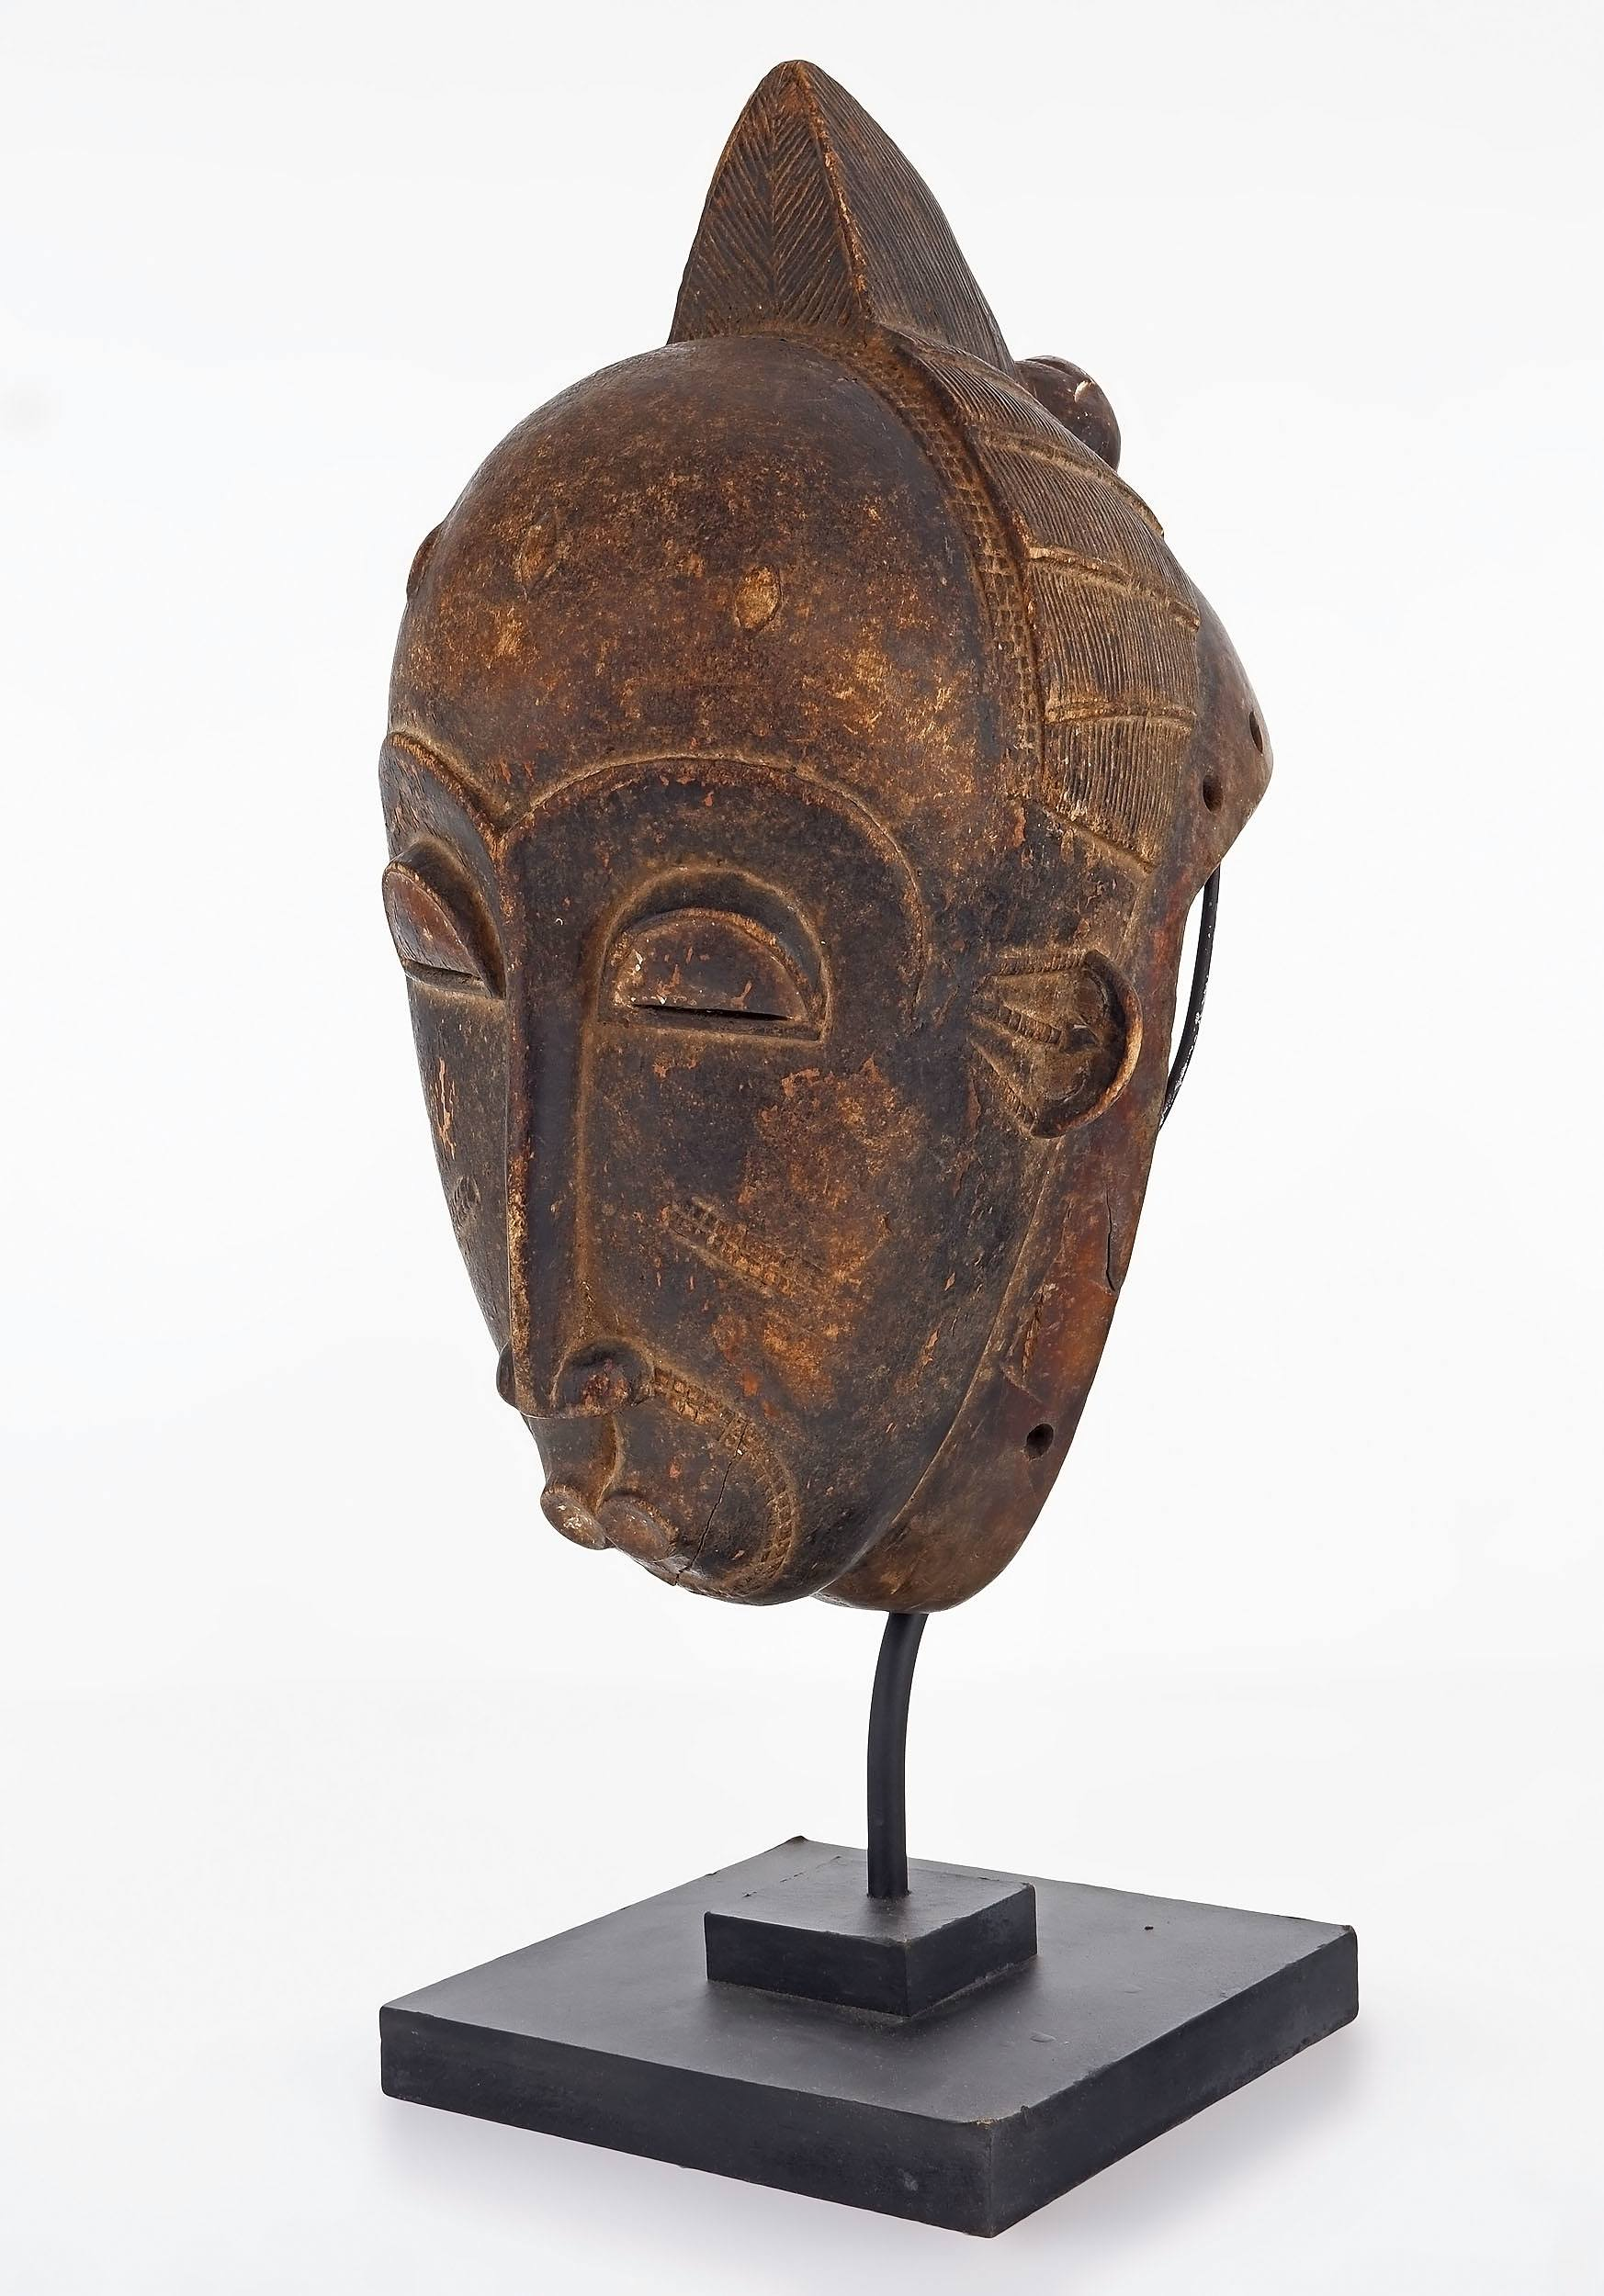 'Ceremonial Mask, Senufo Tribe, Northern Ivory Coast'